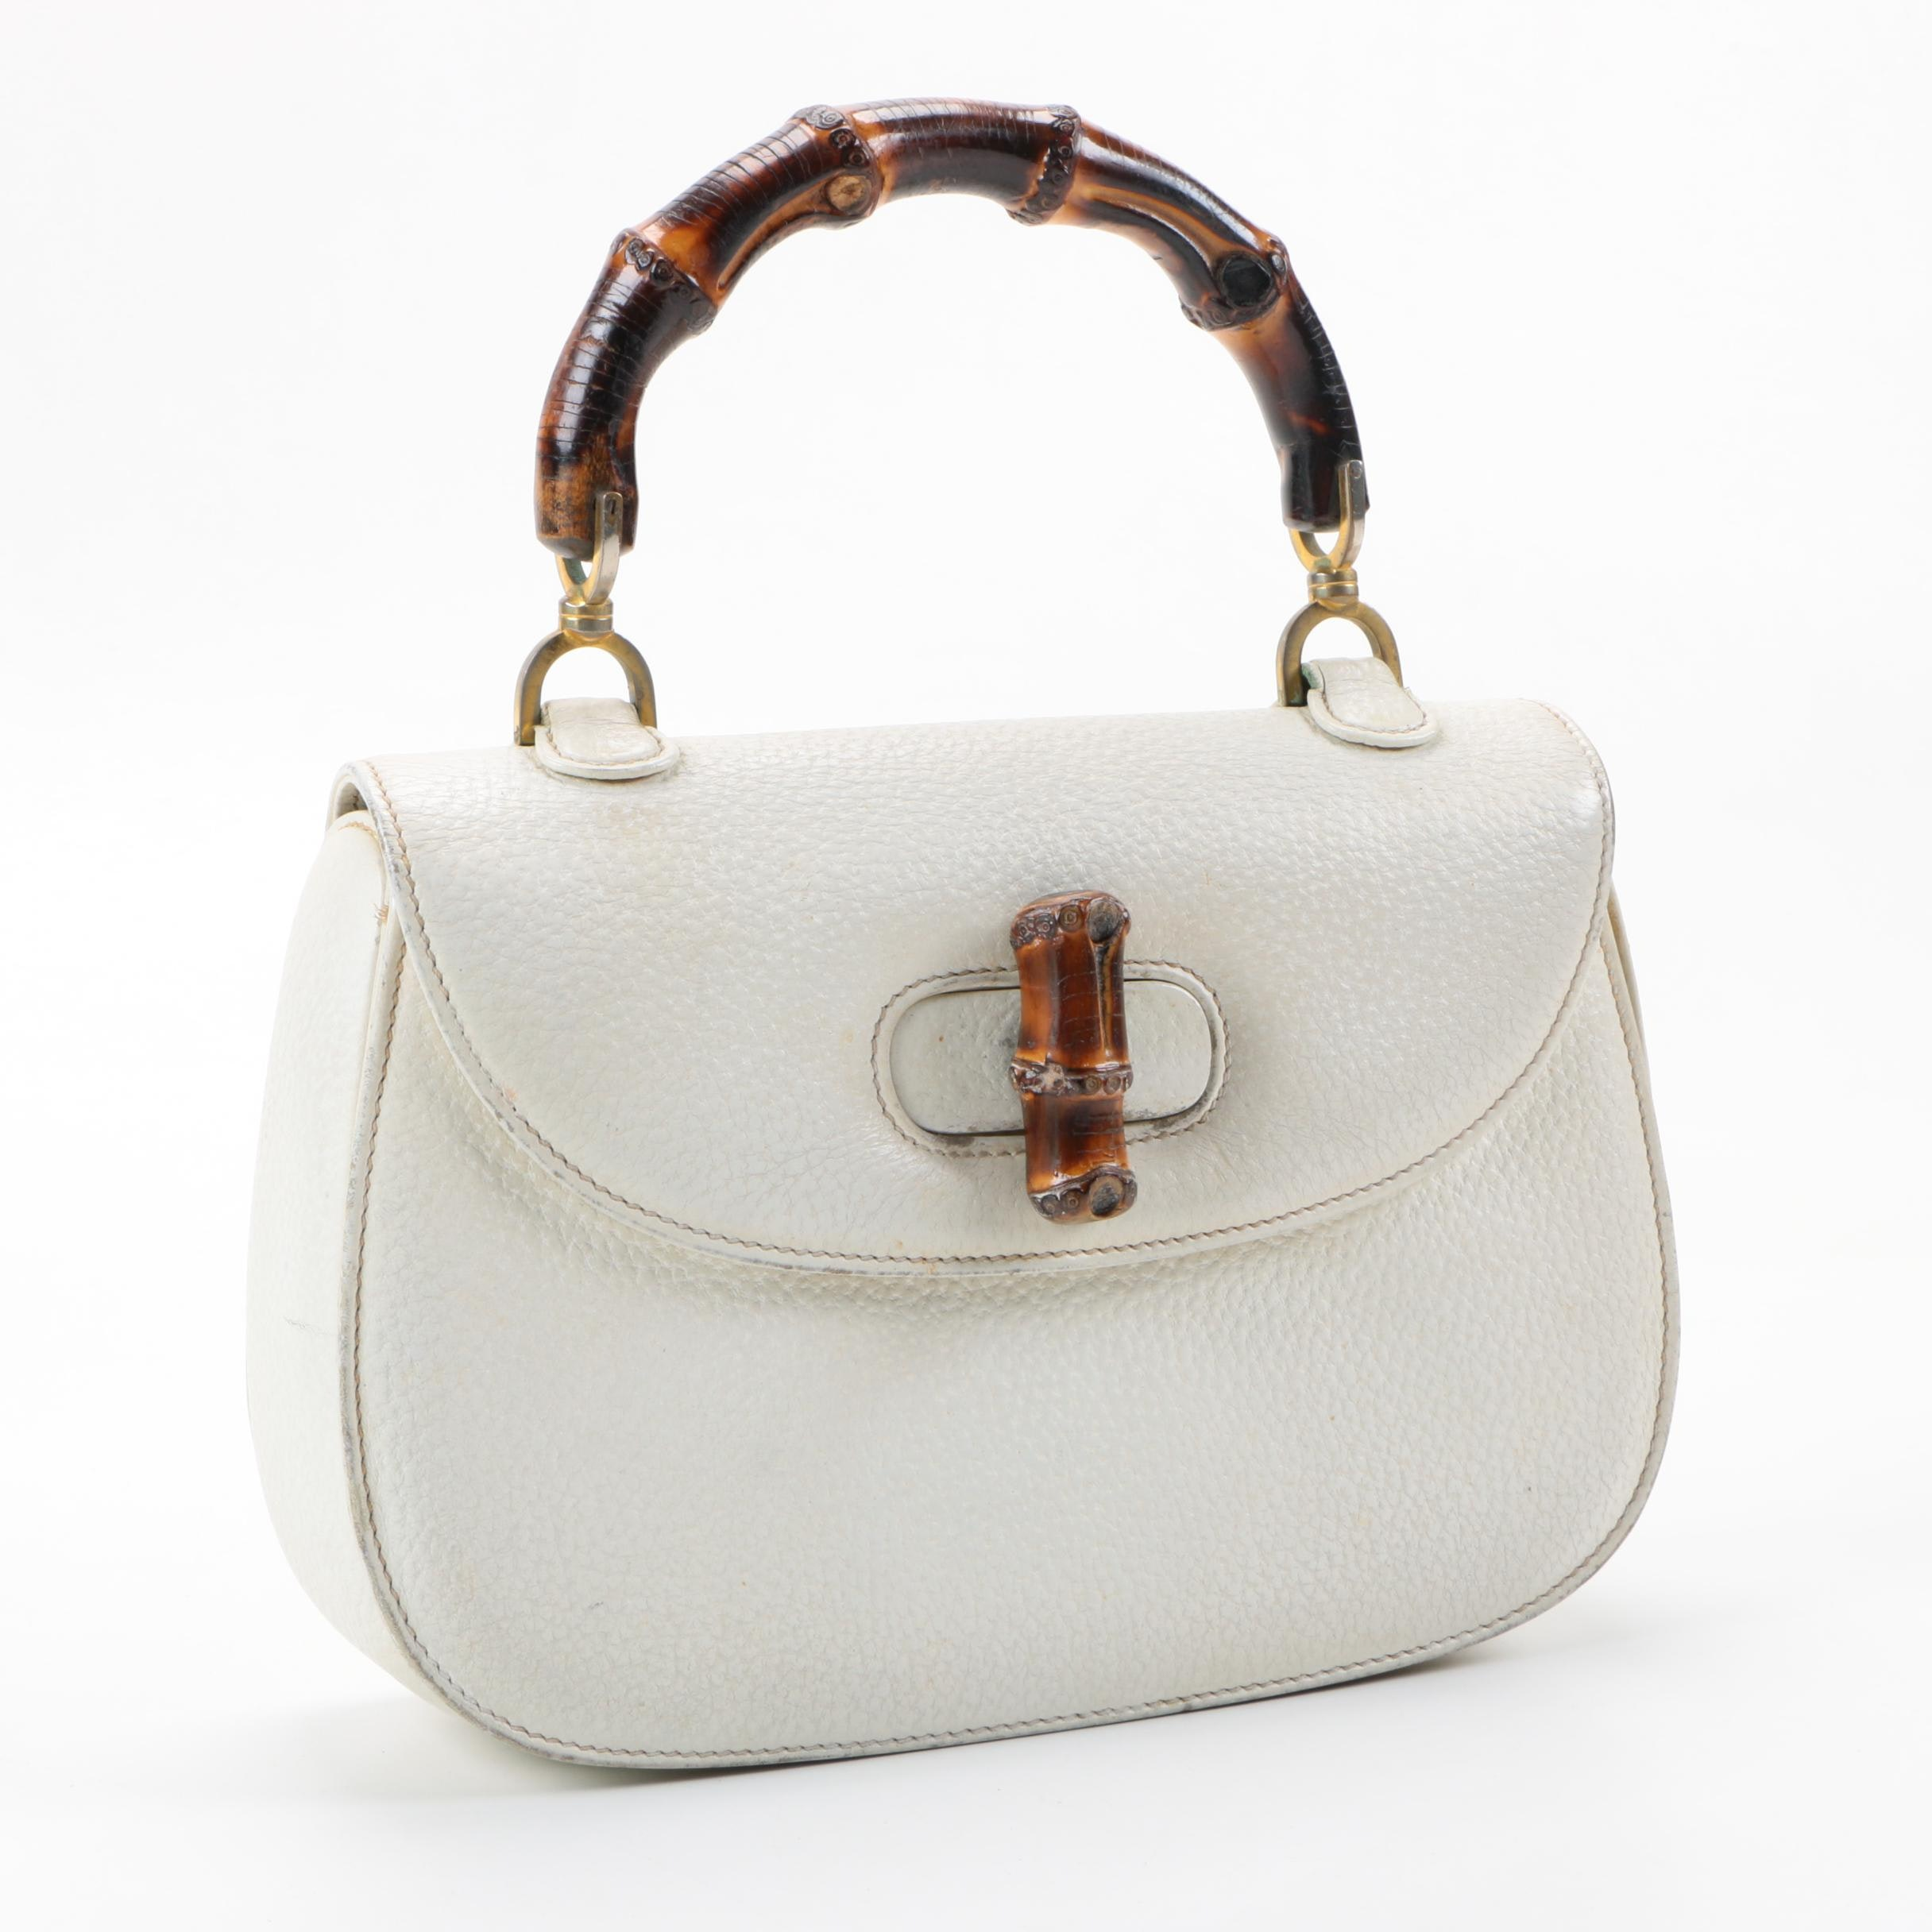 Vintage 1960s Gucci Leather Handbag